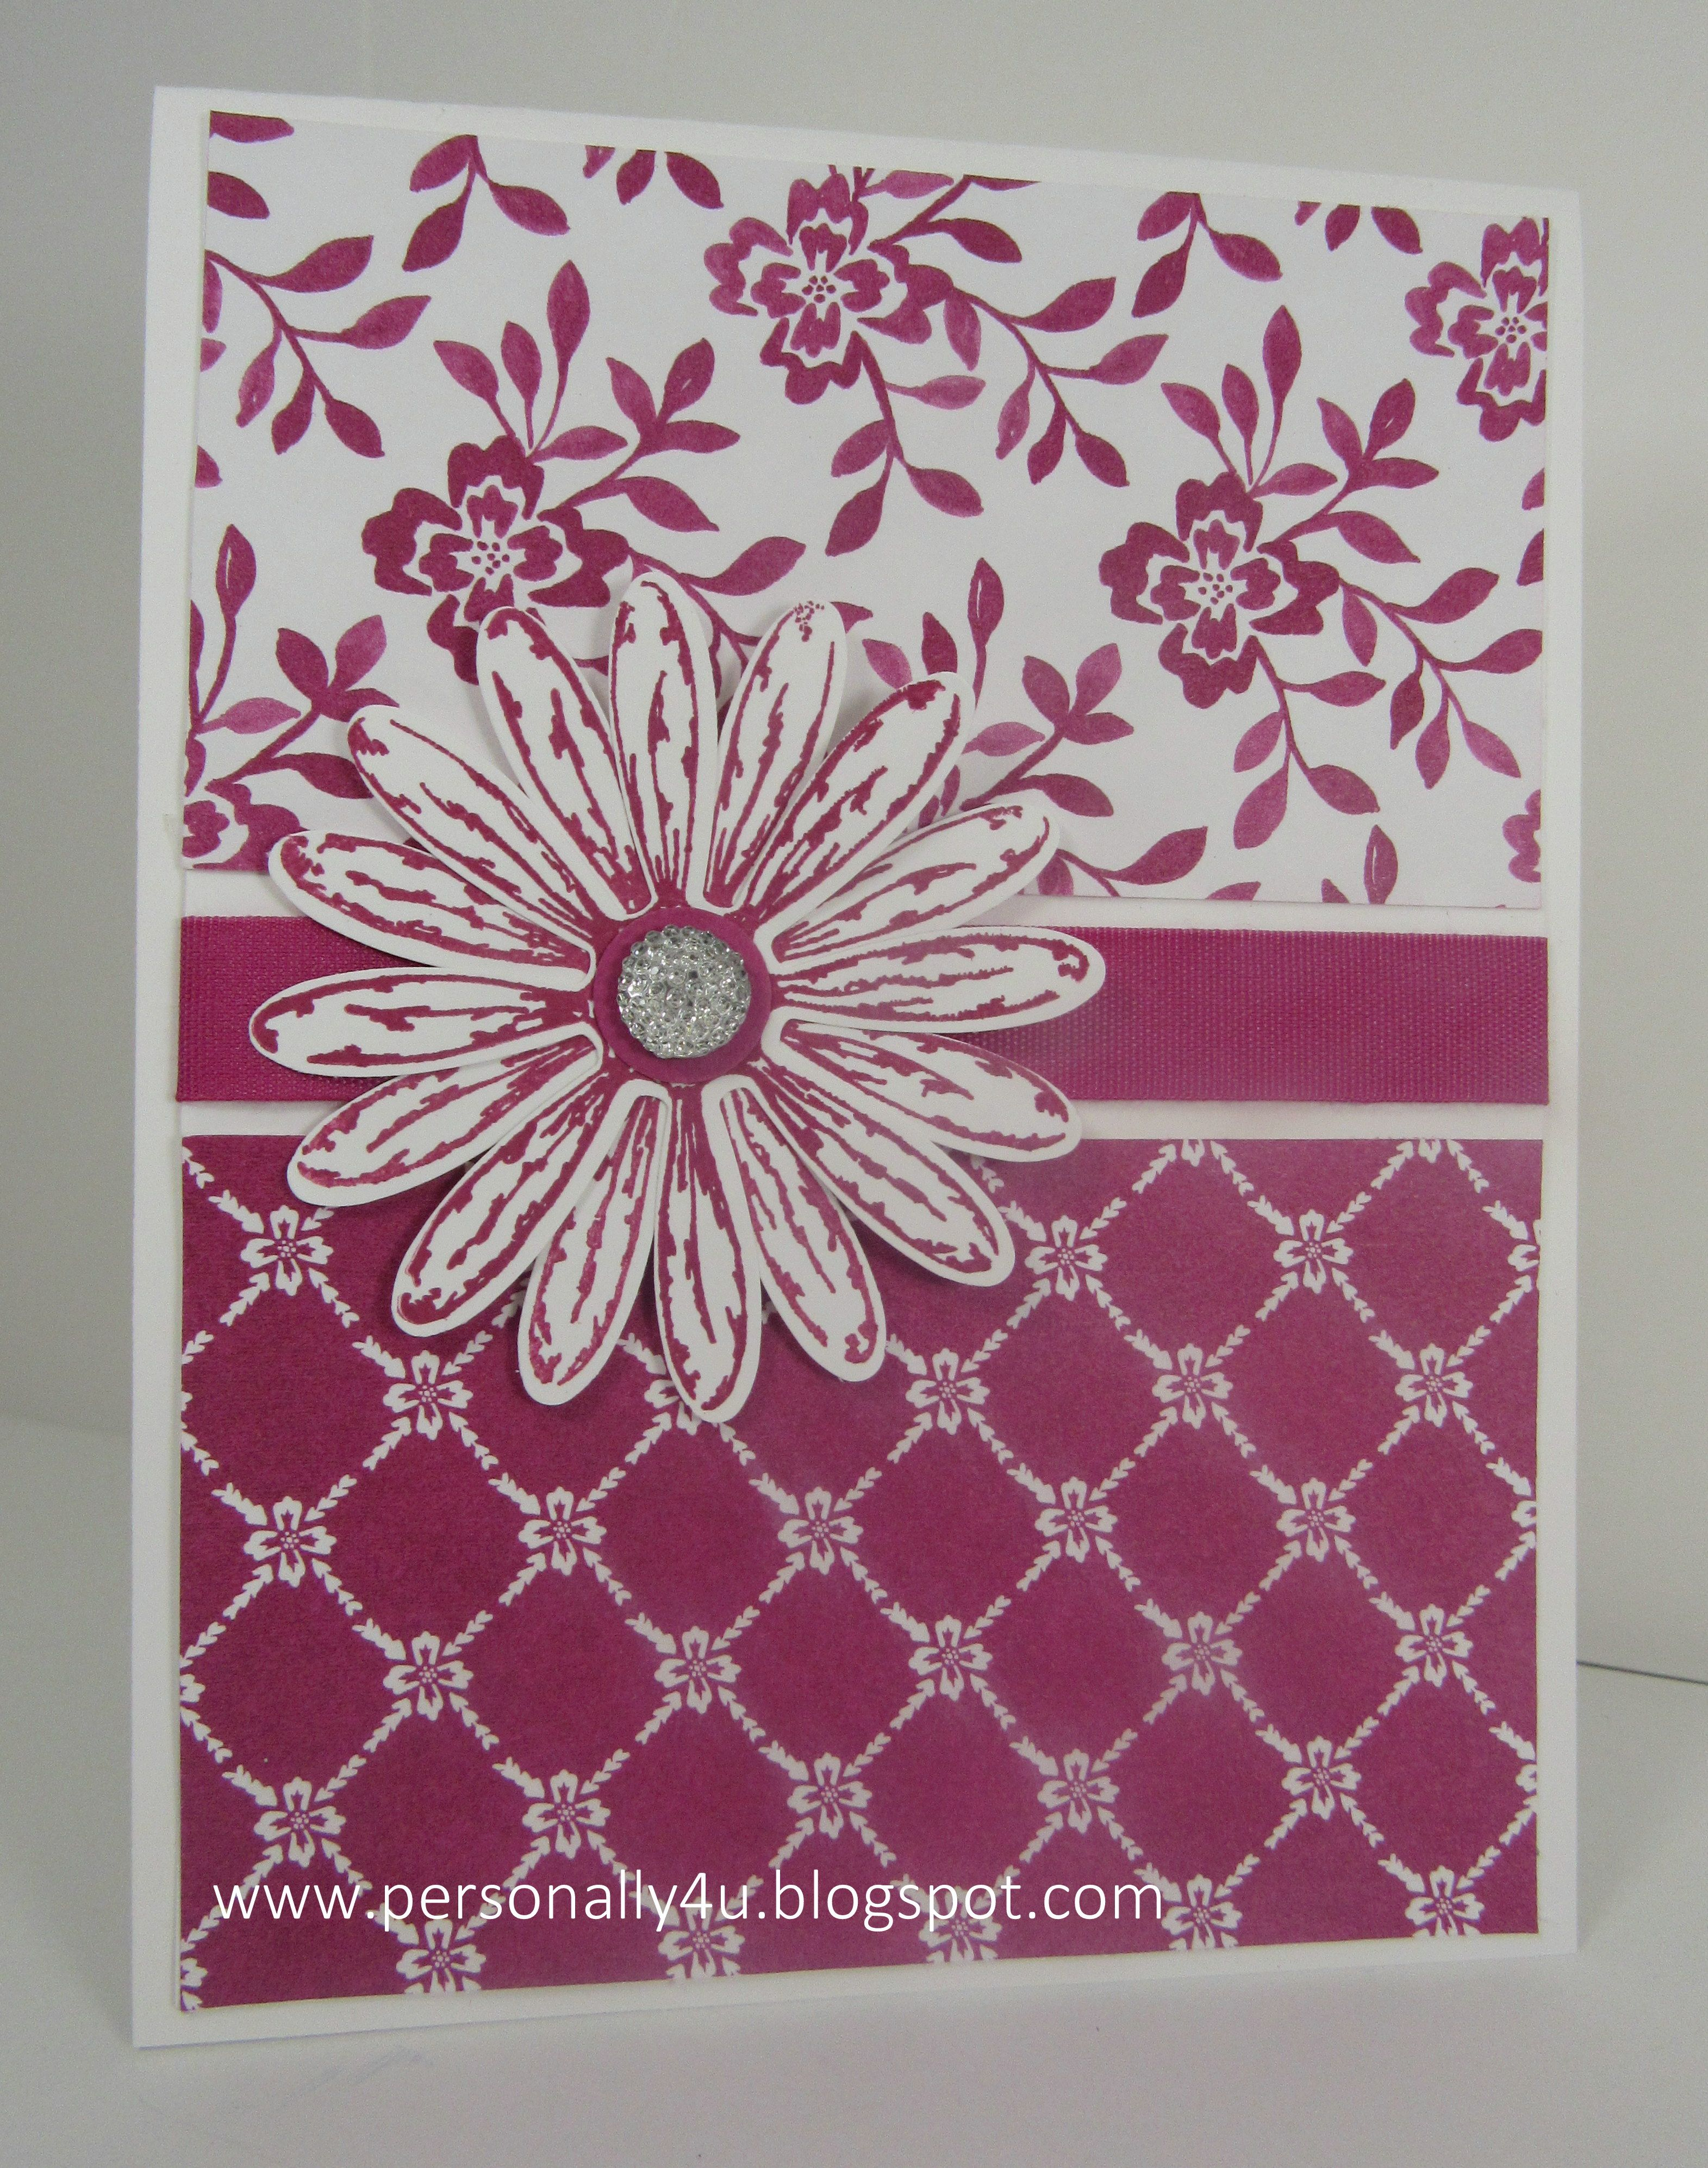 Stampin up delightful daisy stamp set in berry burst in color stampin up delightful daisy stamp set in berry burst in color fresh florals dsp izmirmasajfo